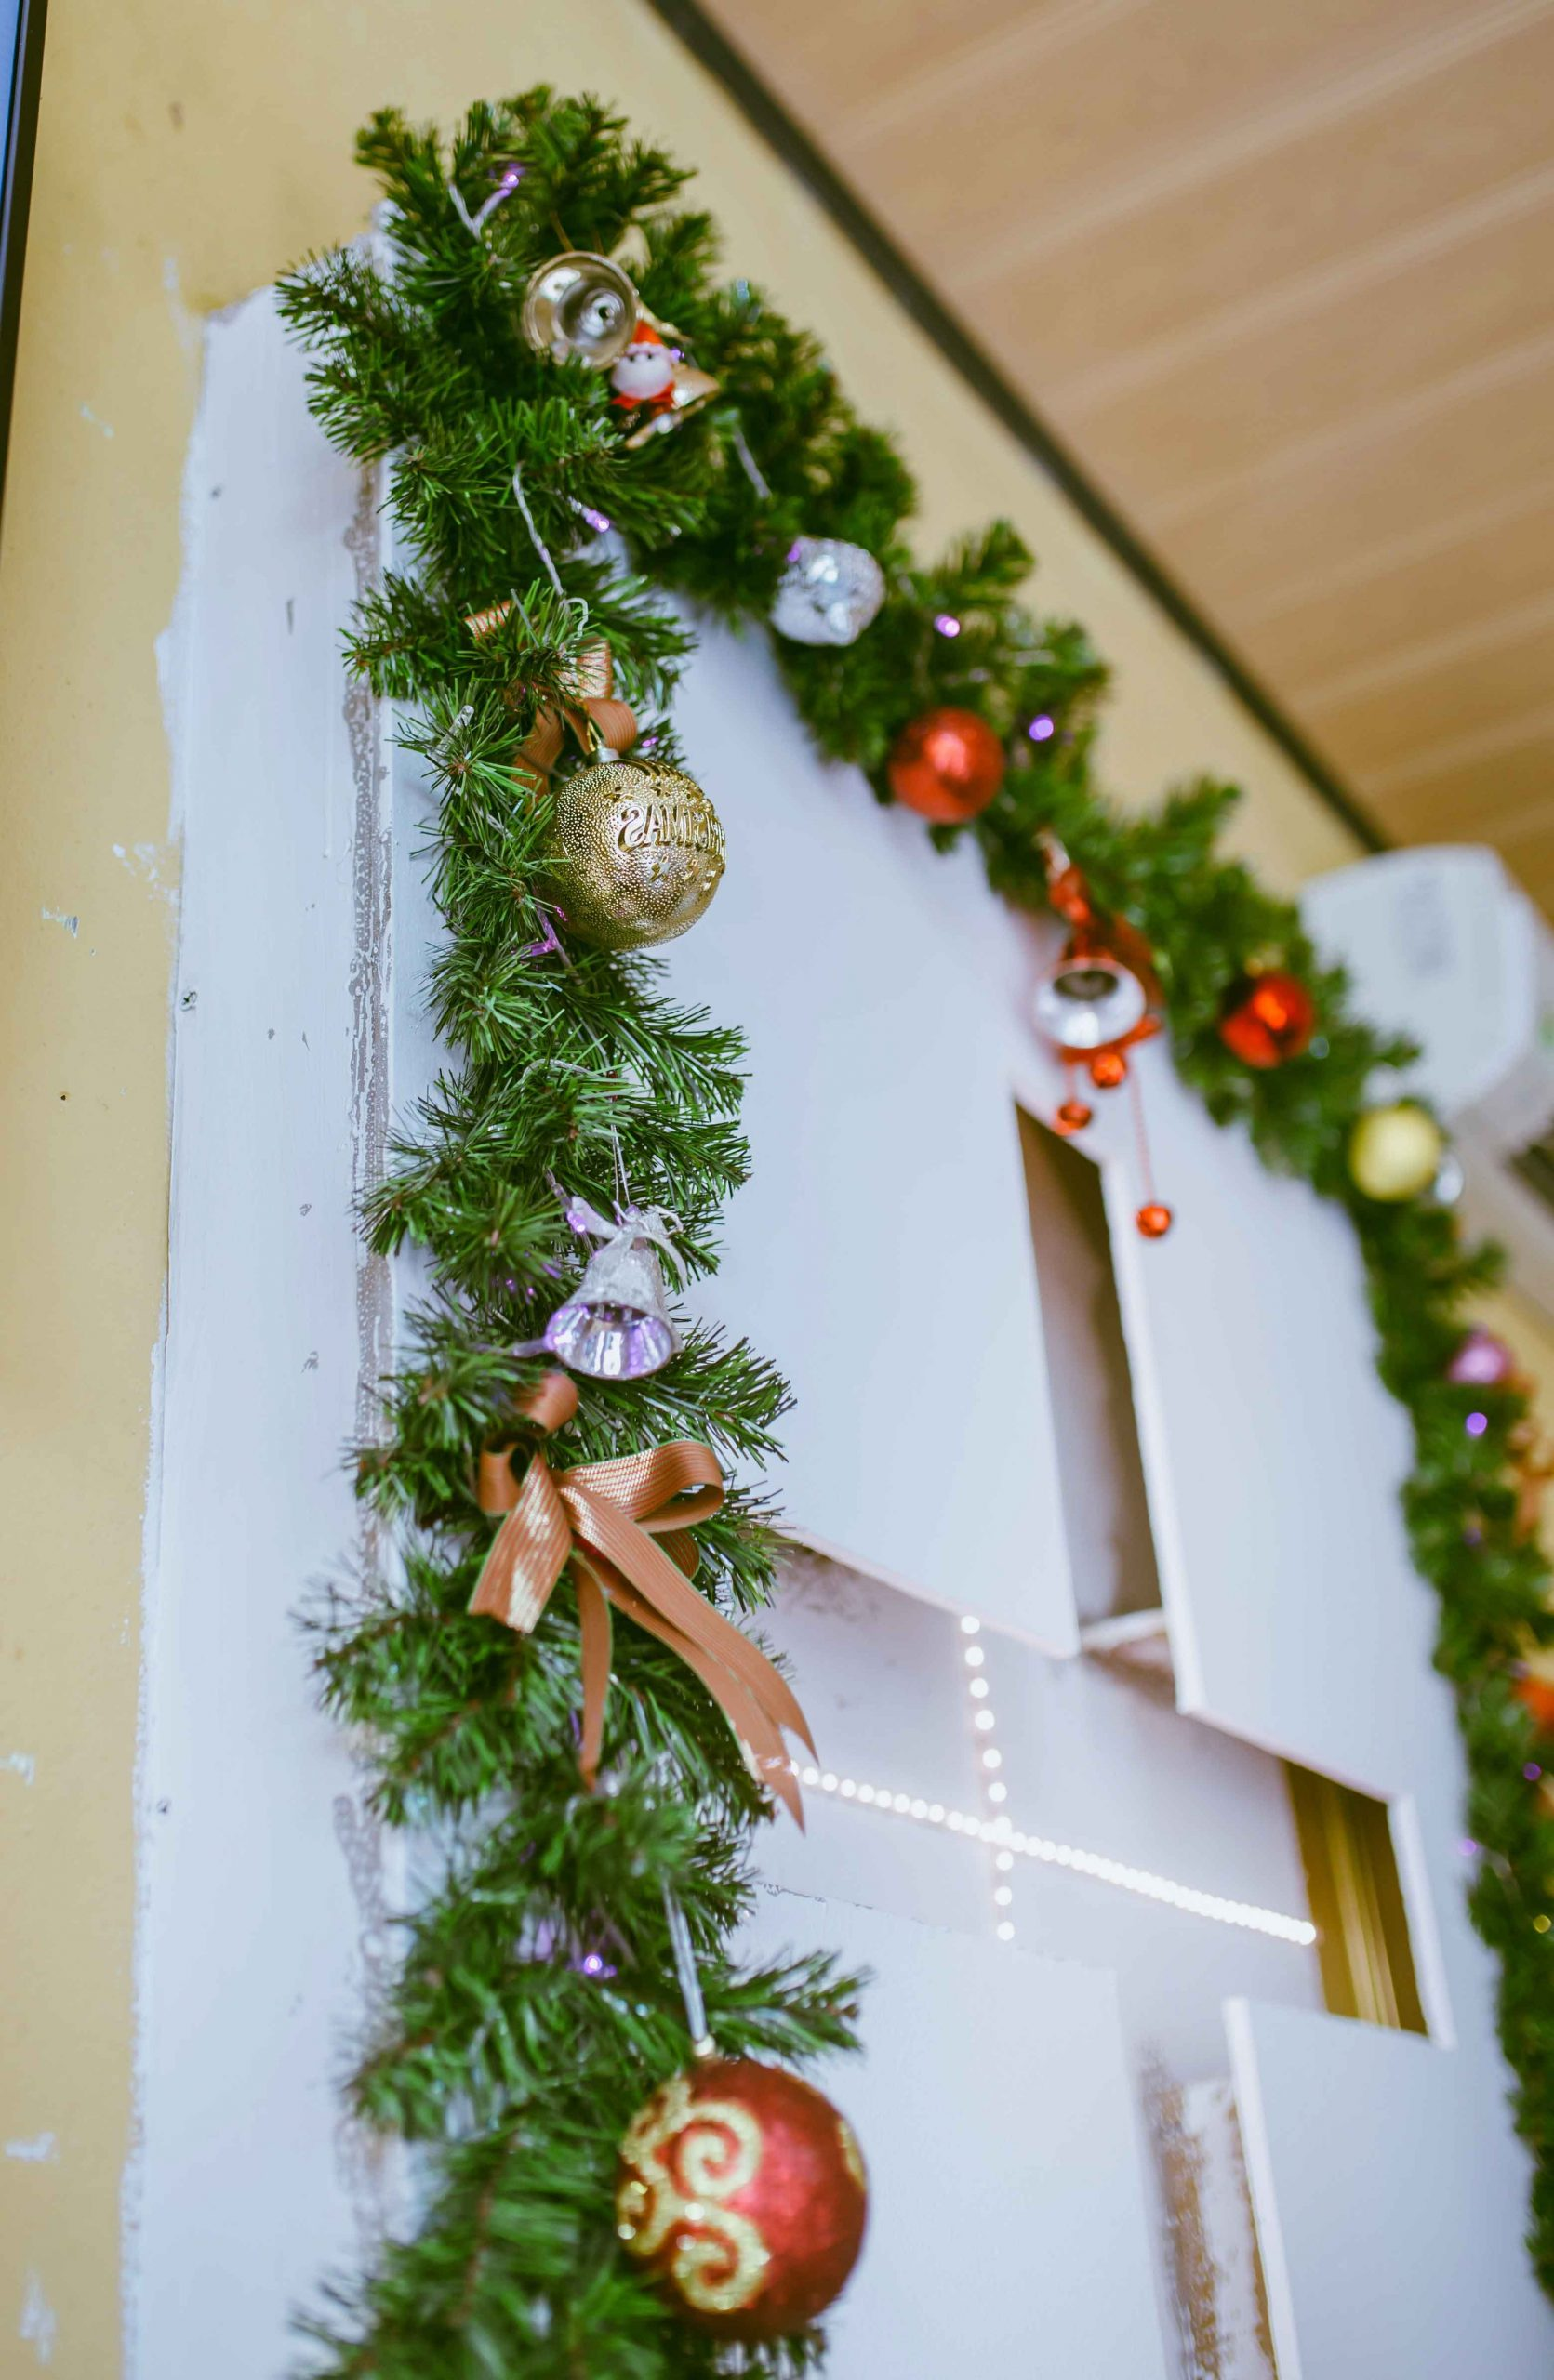 Christmas Garland Front Door Hanging Hacks You Need to Know | Roy Home Design